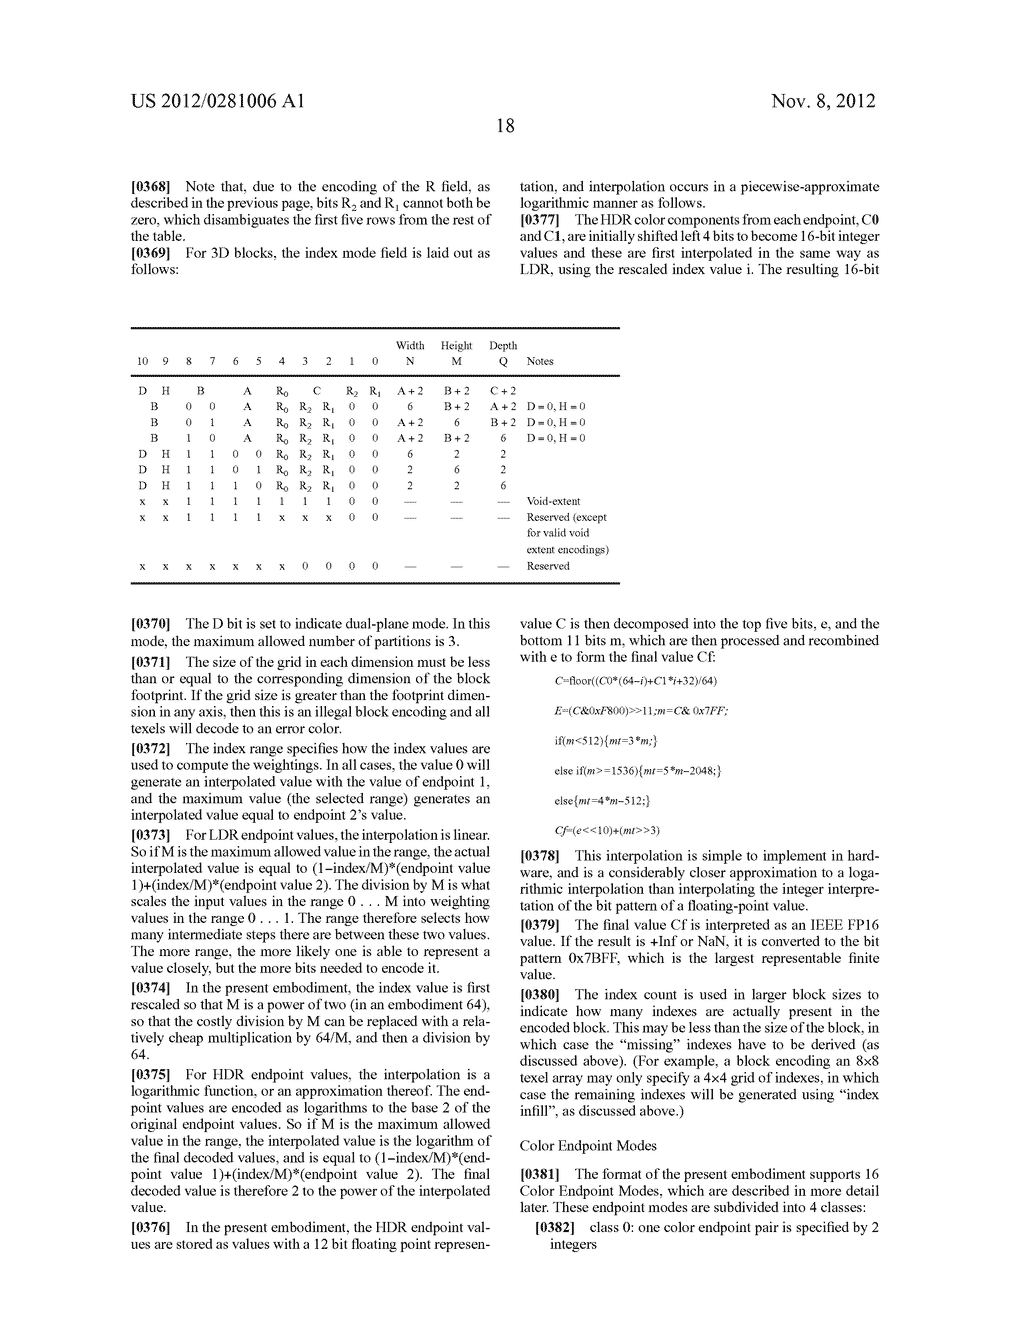 Method Of And Apparatus For Encoding And Decoding Data - diagram, schematic, and image 30